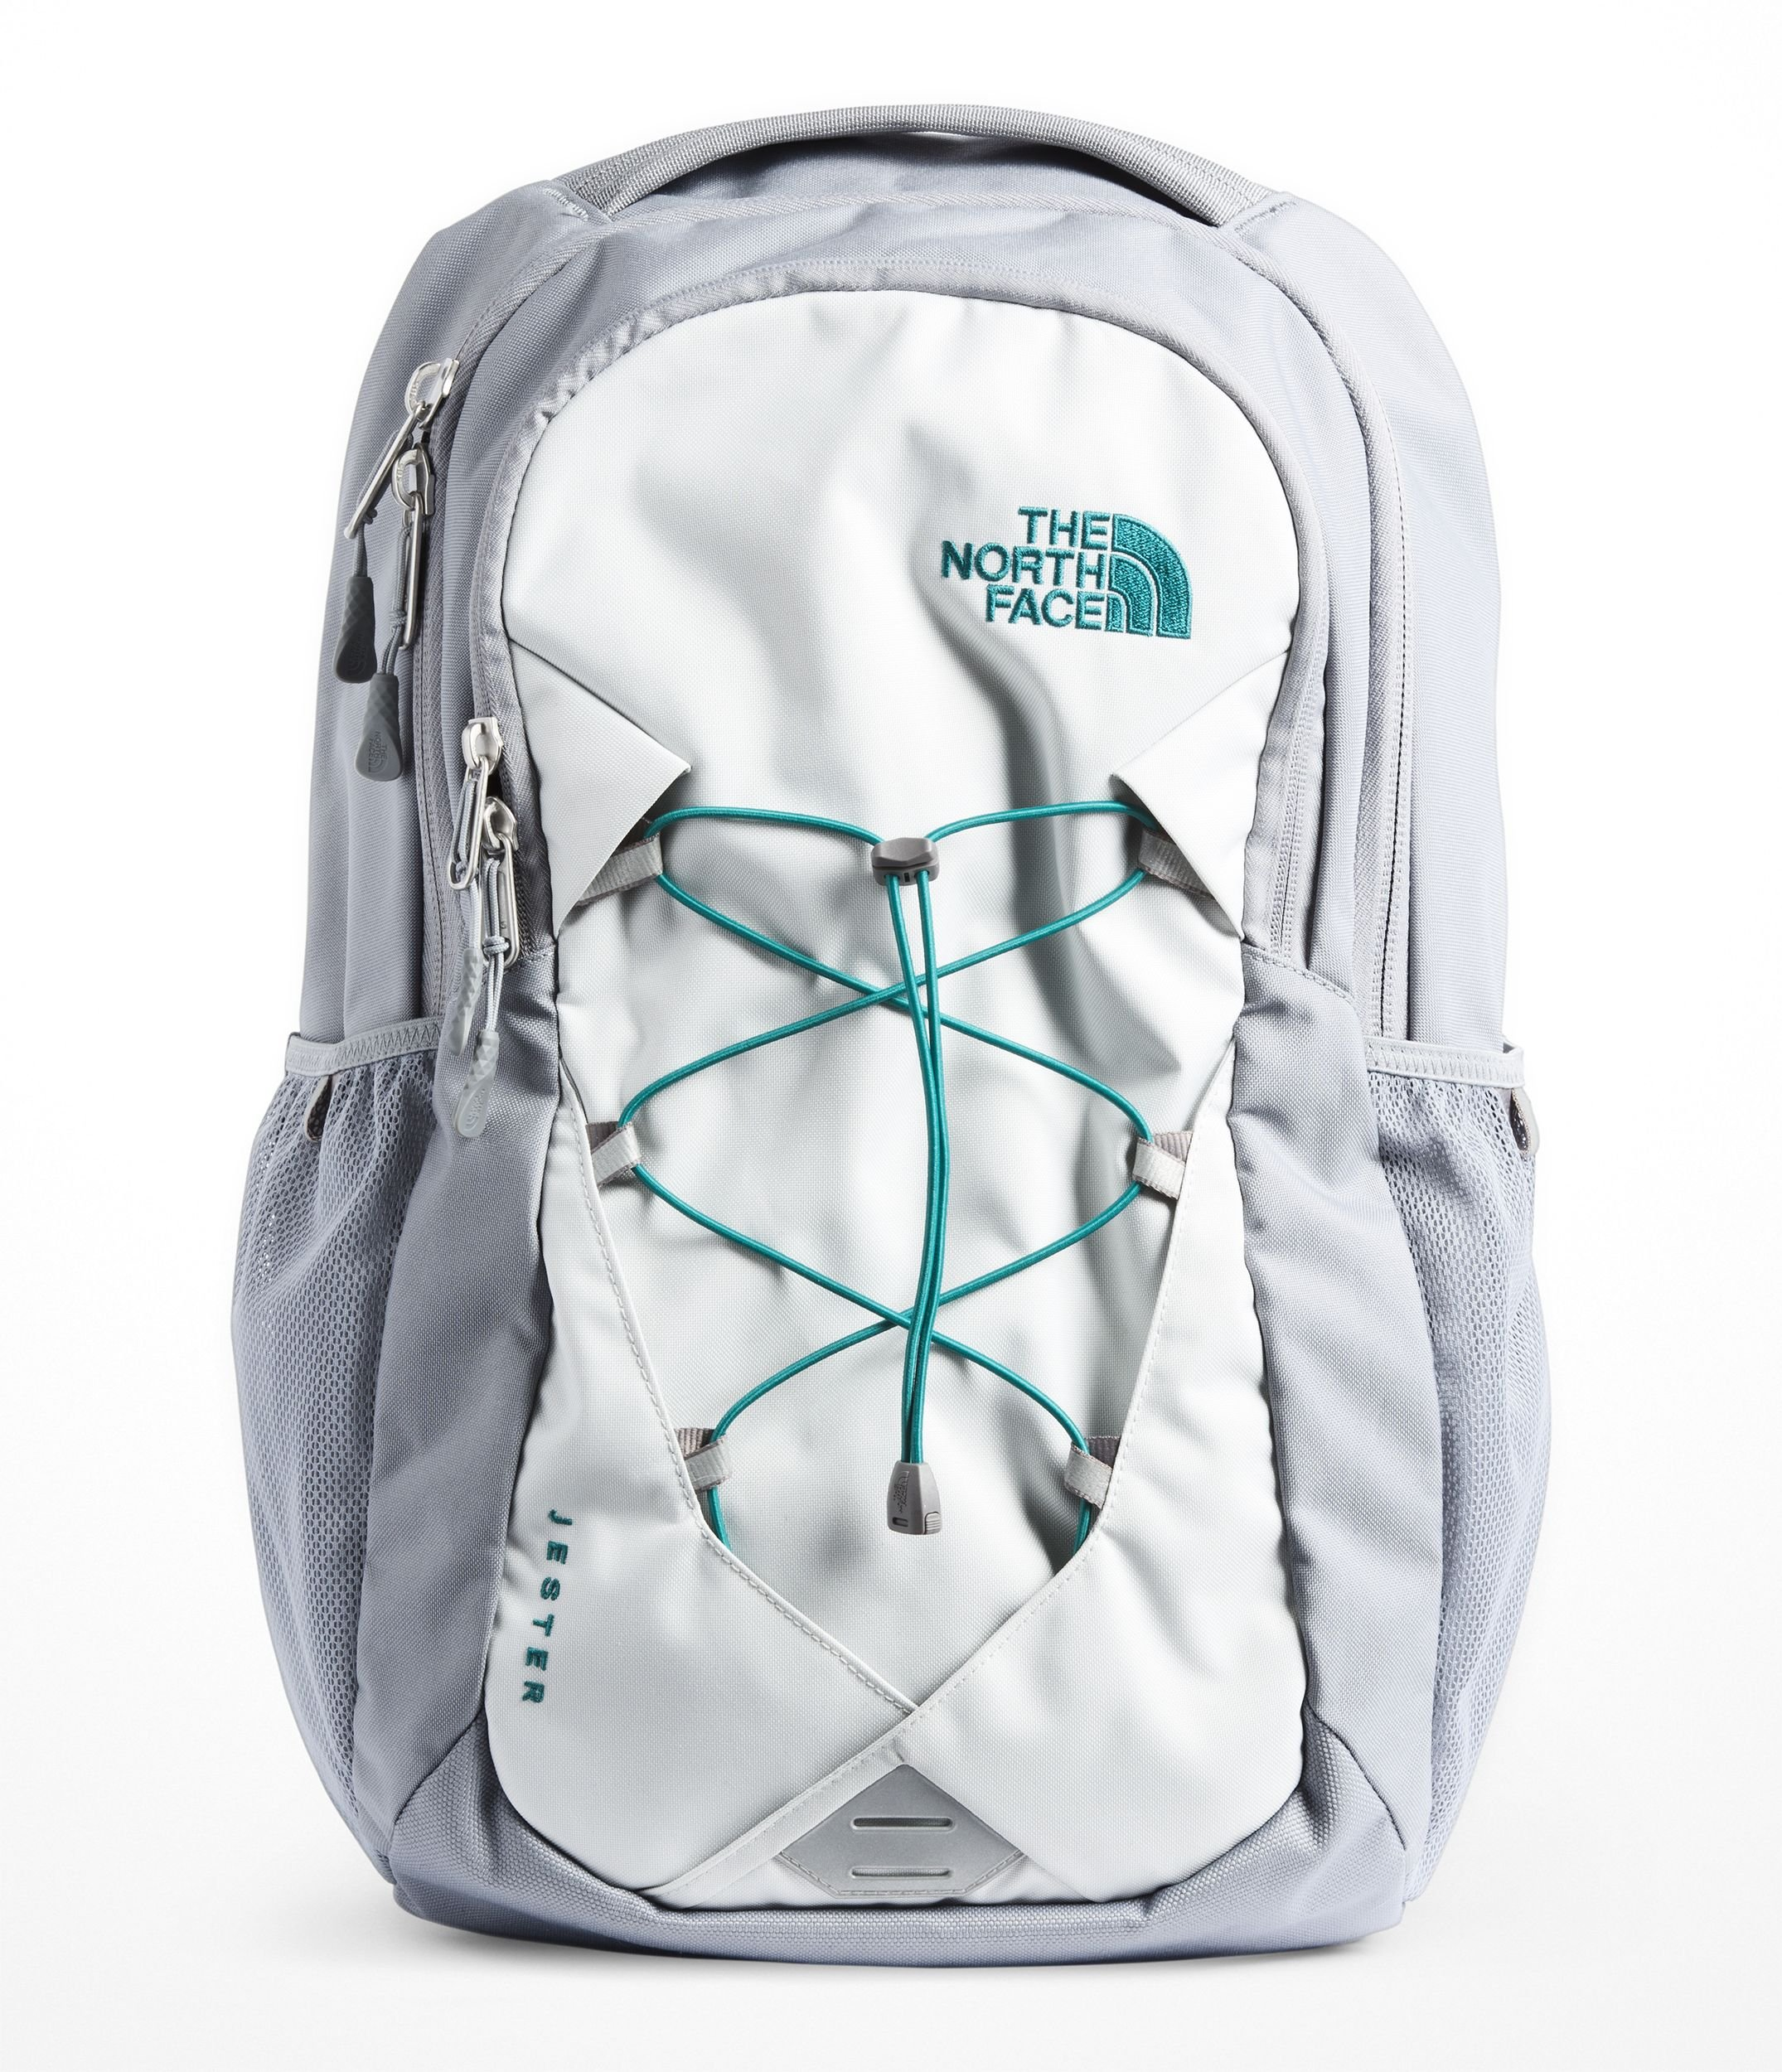 The North Face Women's Jester Backpack Tin Grey/Mid Grey One Size by The North Face